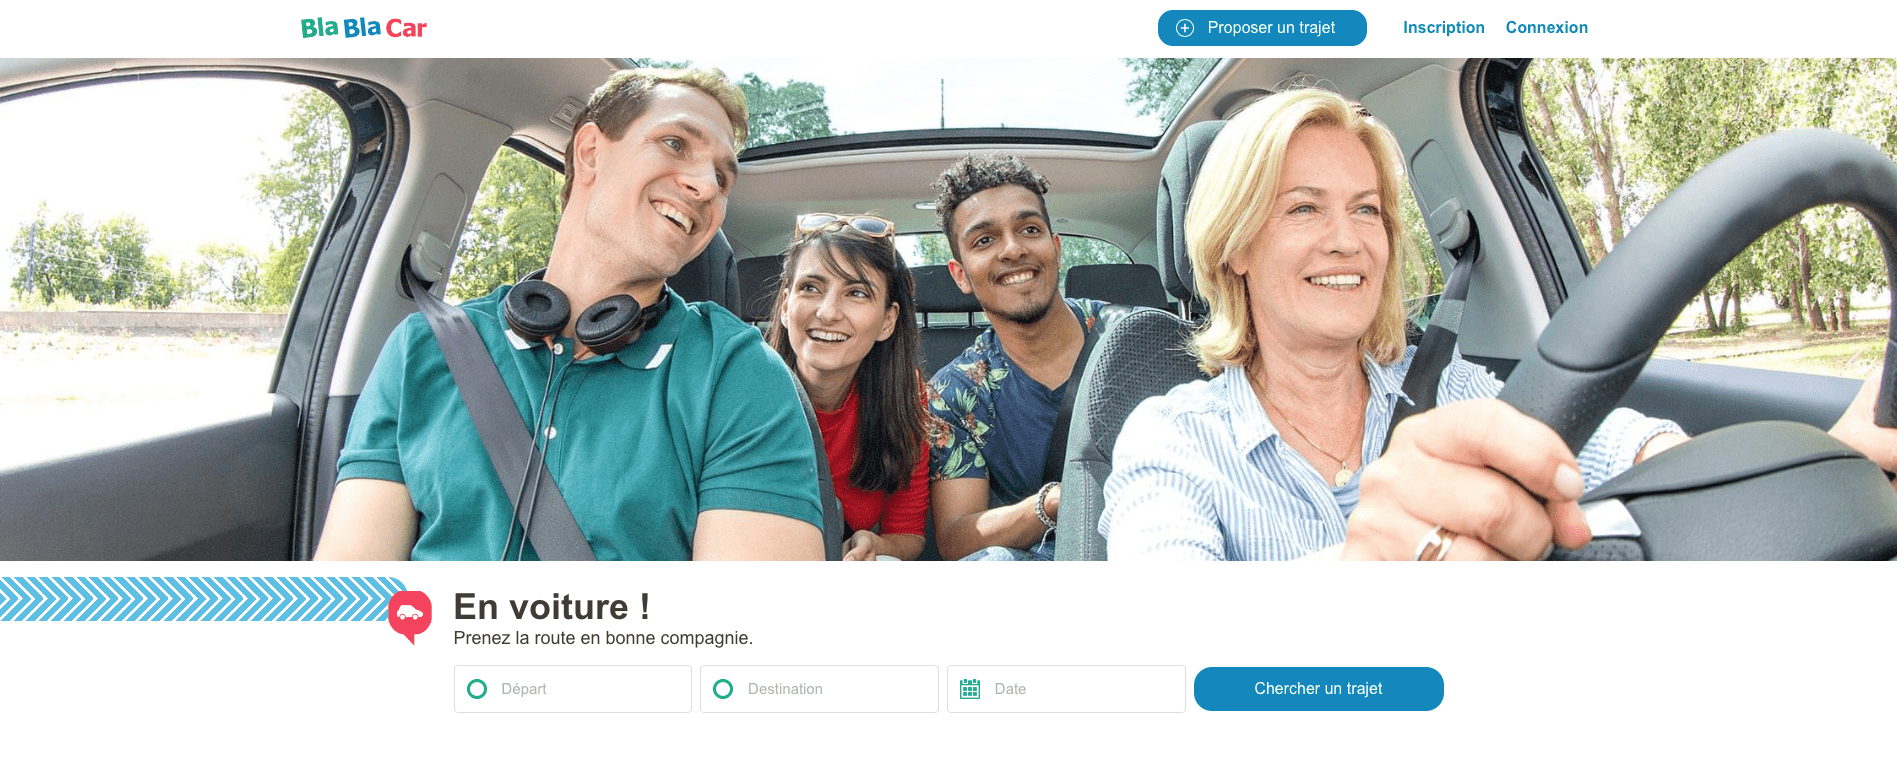 canva - entreprise - motivation - blablacar